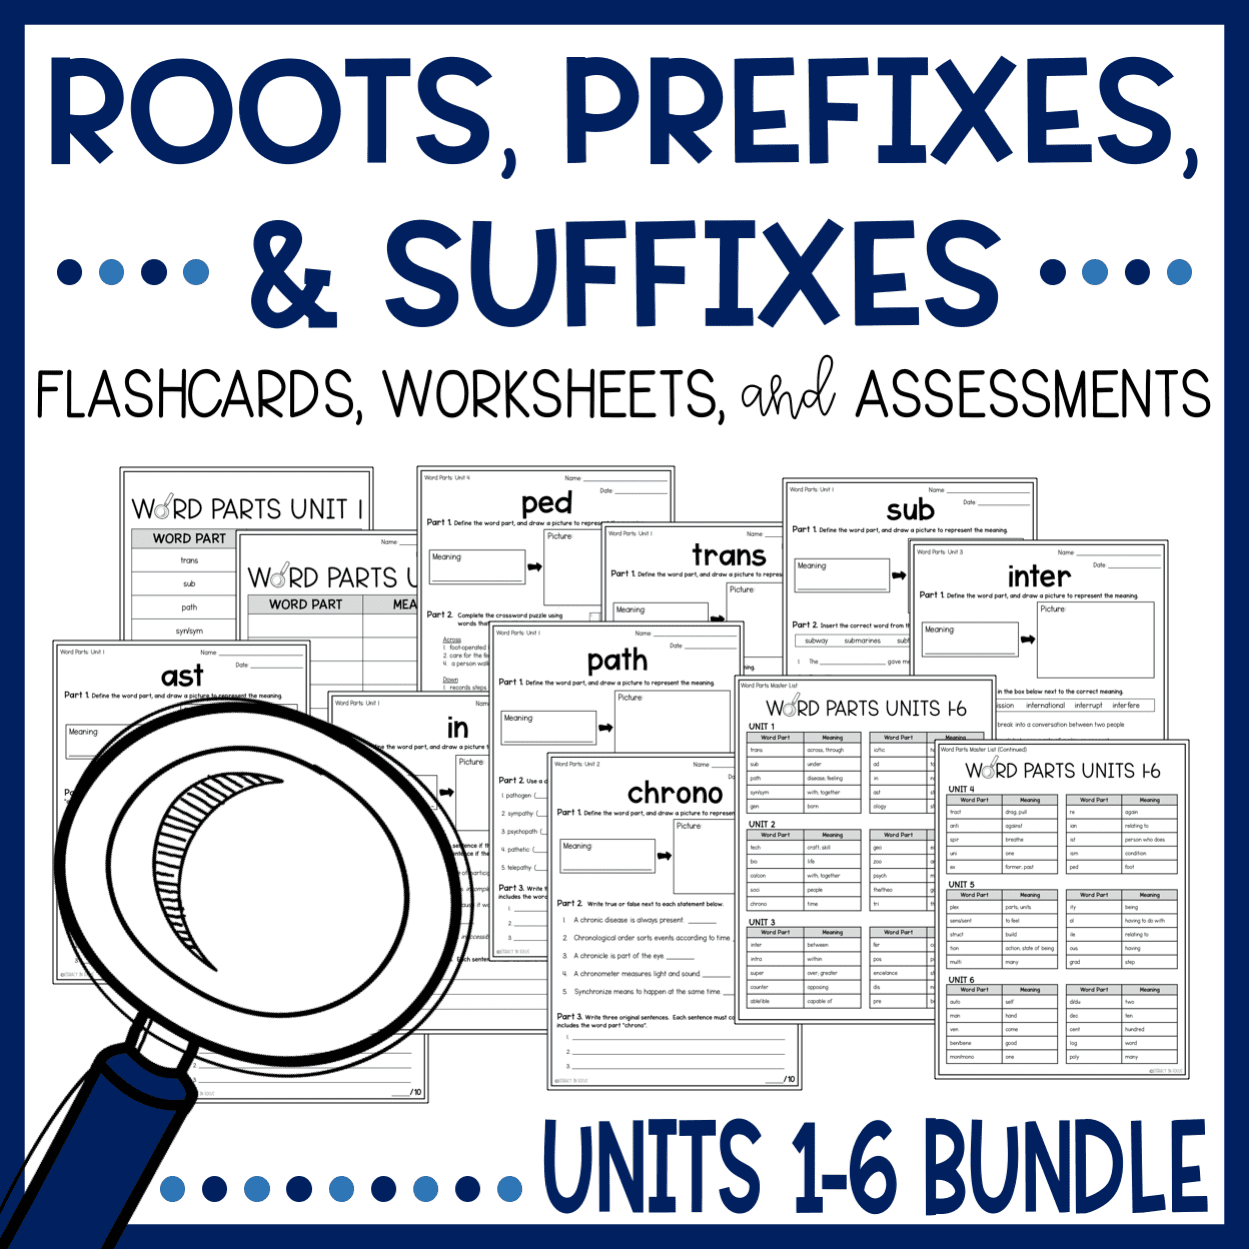 Roots, Prefixes, and Suffixes Lesson Plans